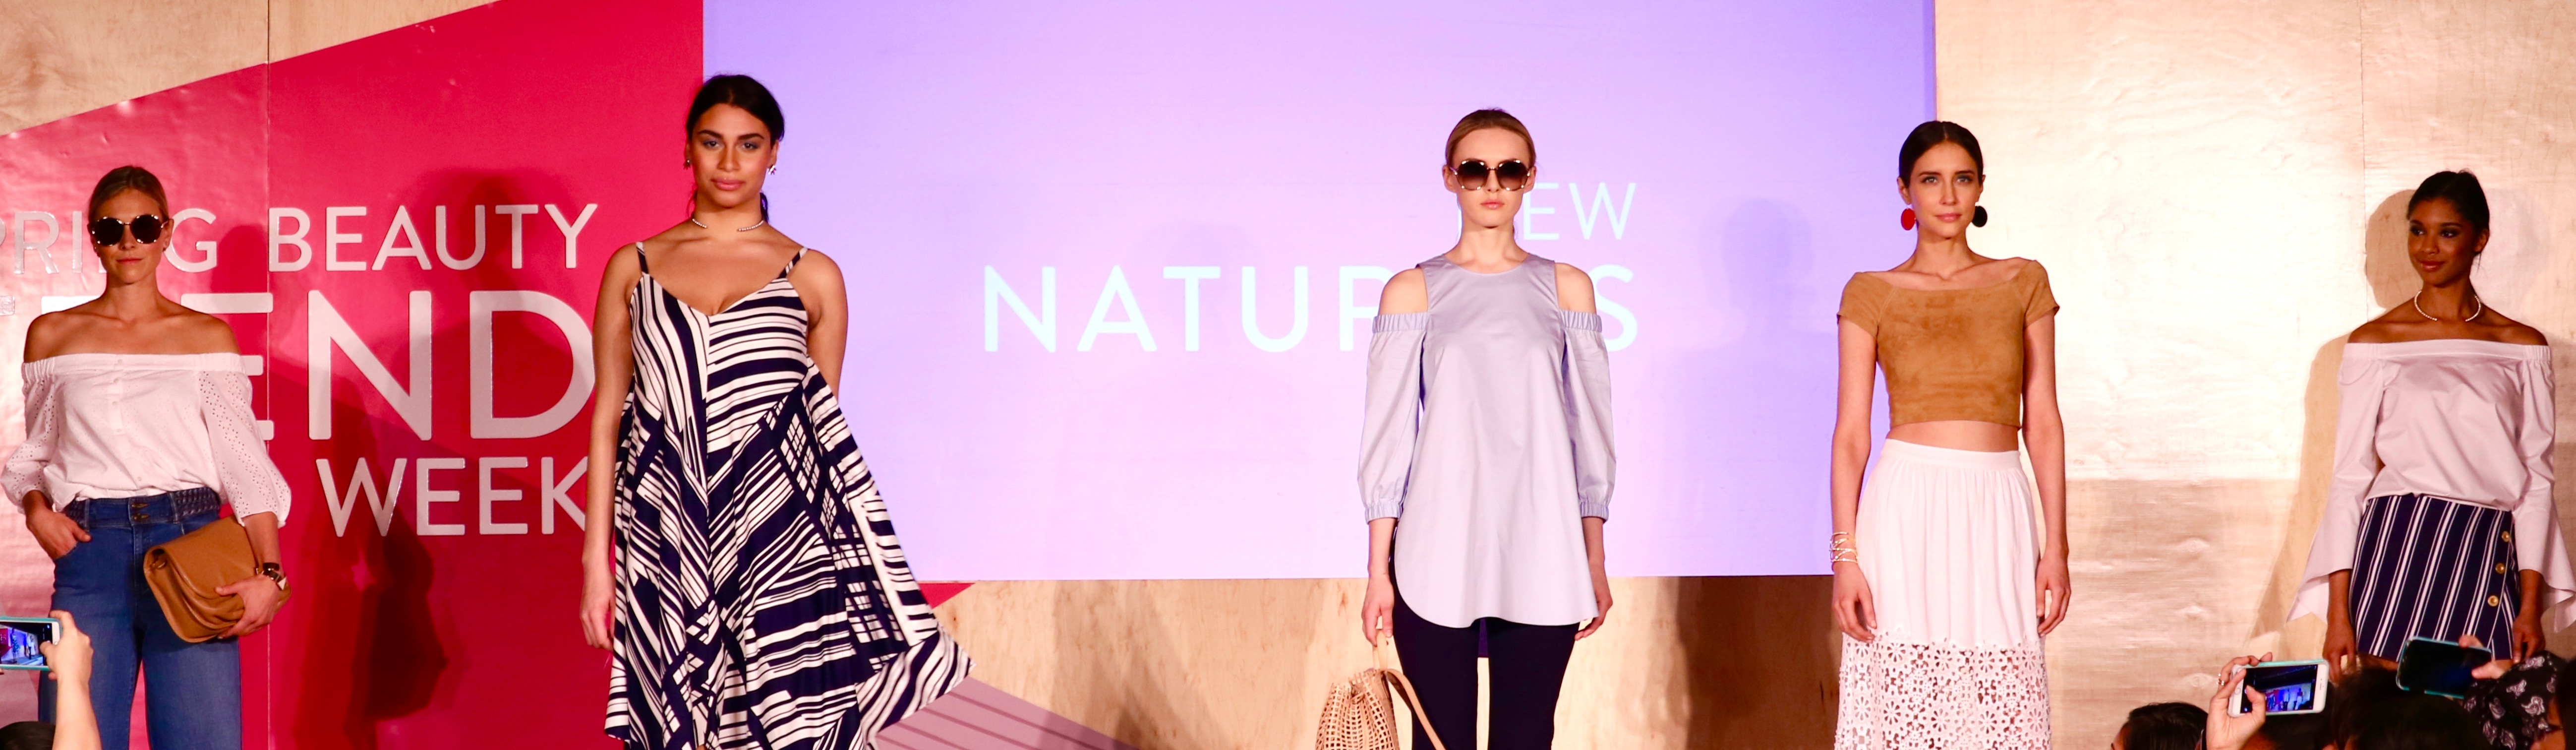 New Naturals Nordstrom Beauty Trend Show 2016 Spring Bowtiful Life 2